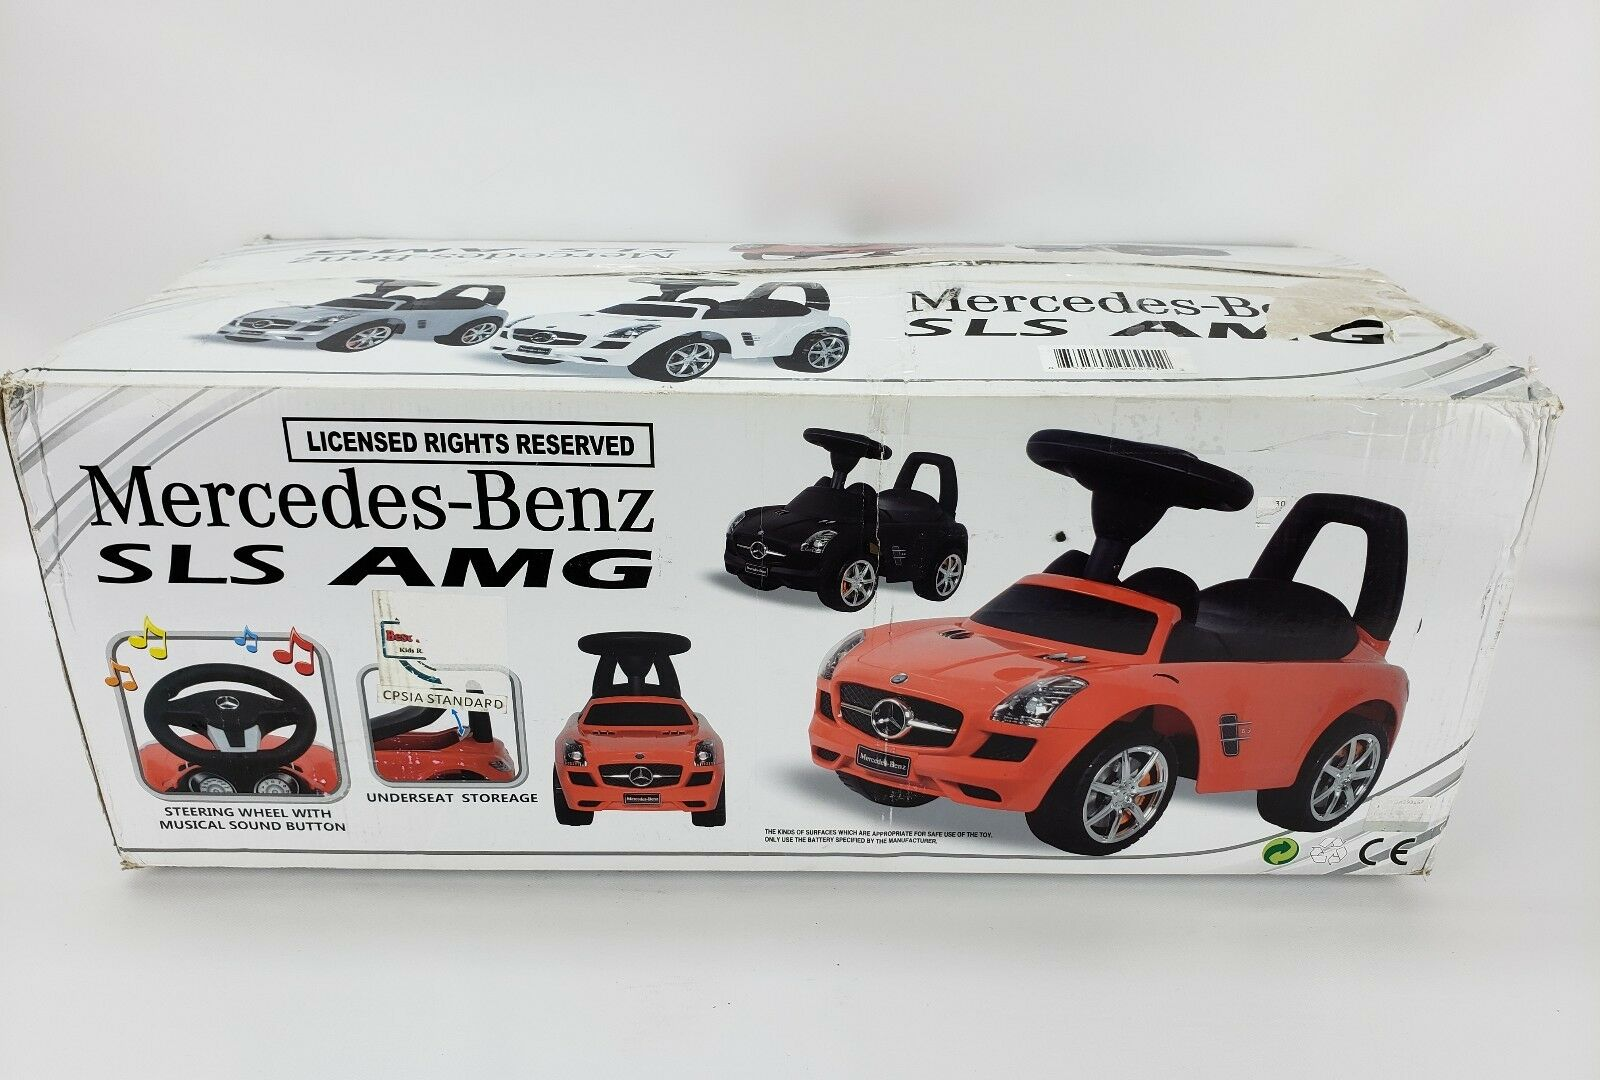 Mercedes Benz SLS AMG AMG AMG RED Push Car For Toddlers Ages 1-3 Best Ride On Cars 276c8e